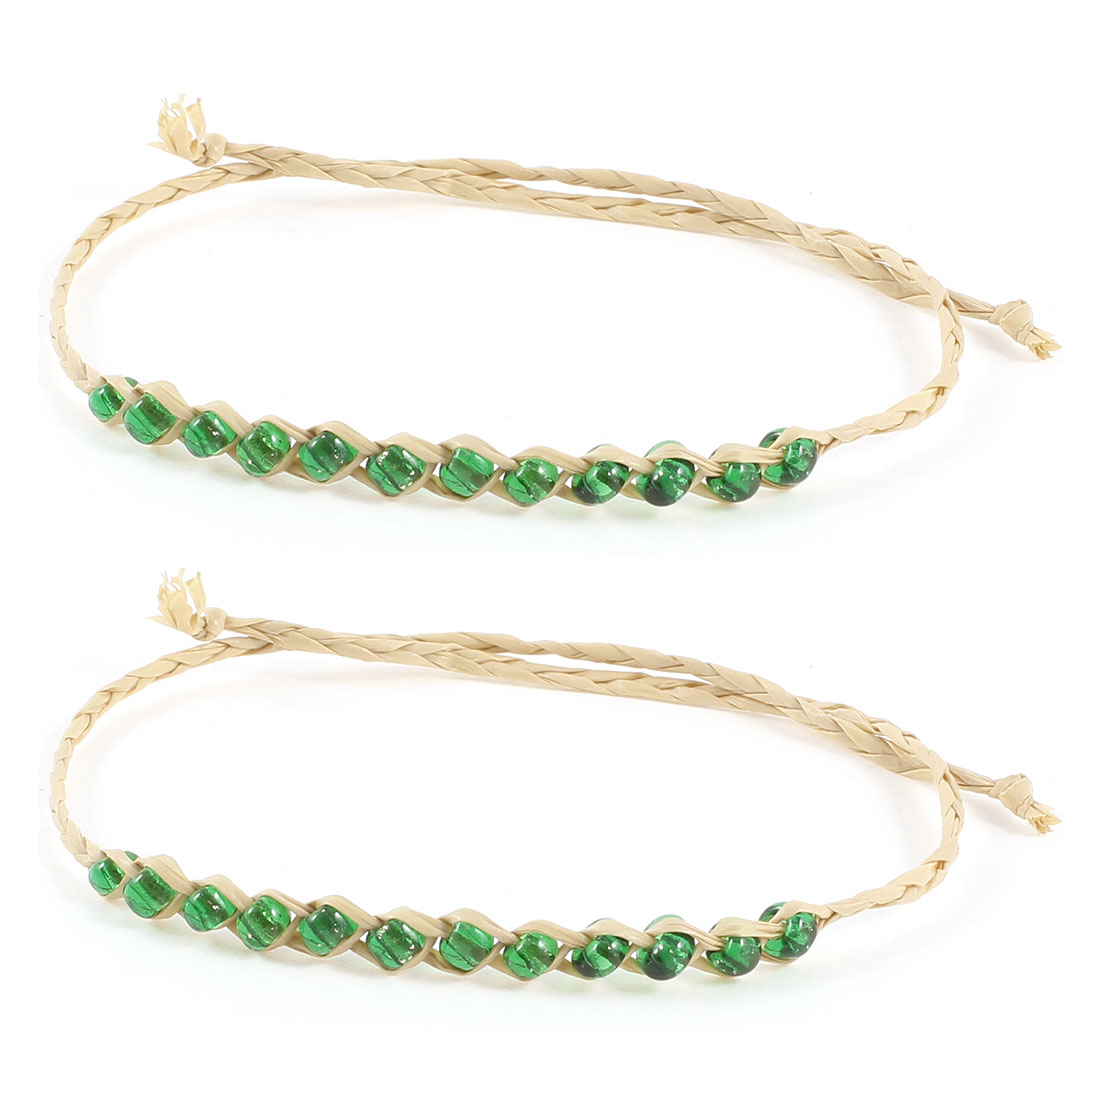 Girl Green Beige Glitter Beads Accent Straw Bracelets Wrist Ornament 2 Pcs